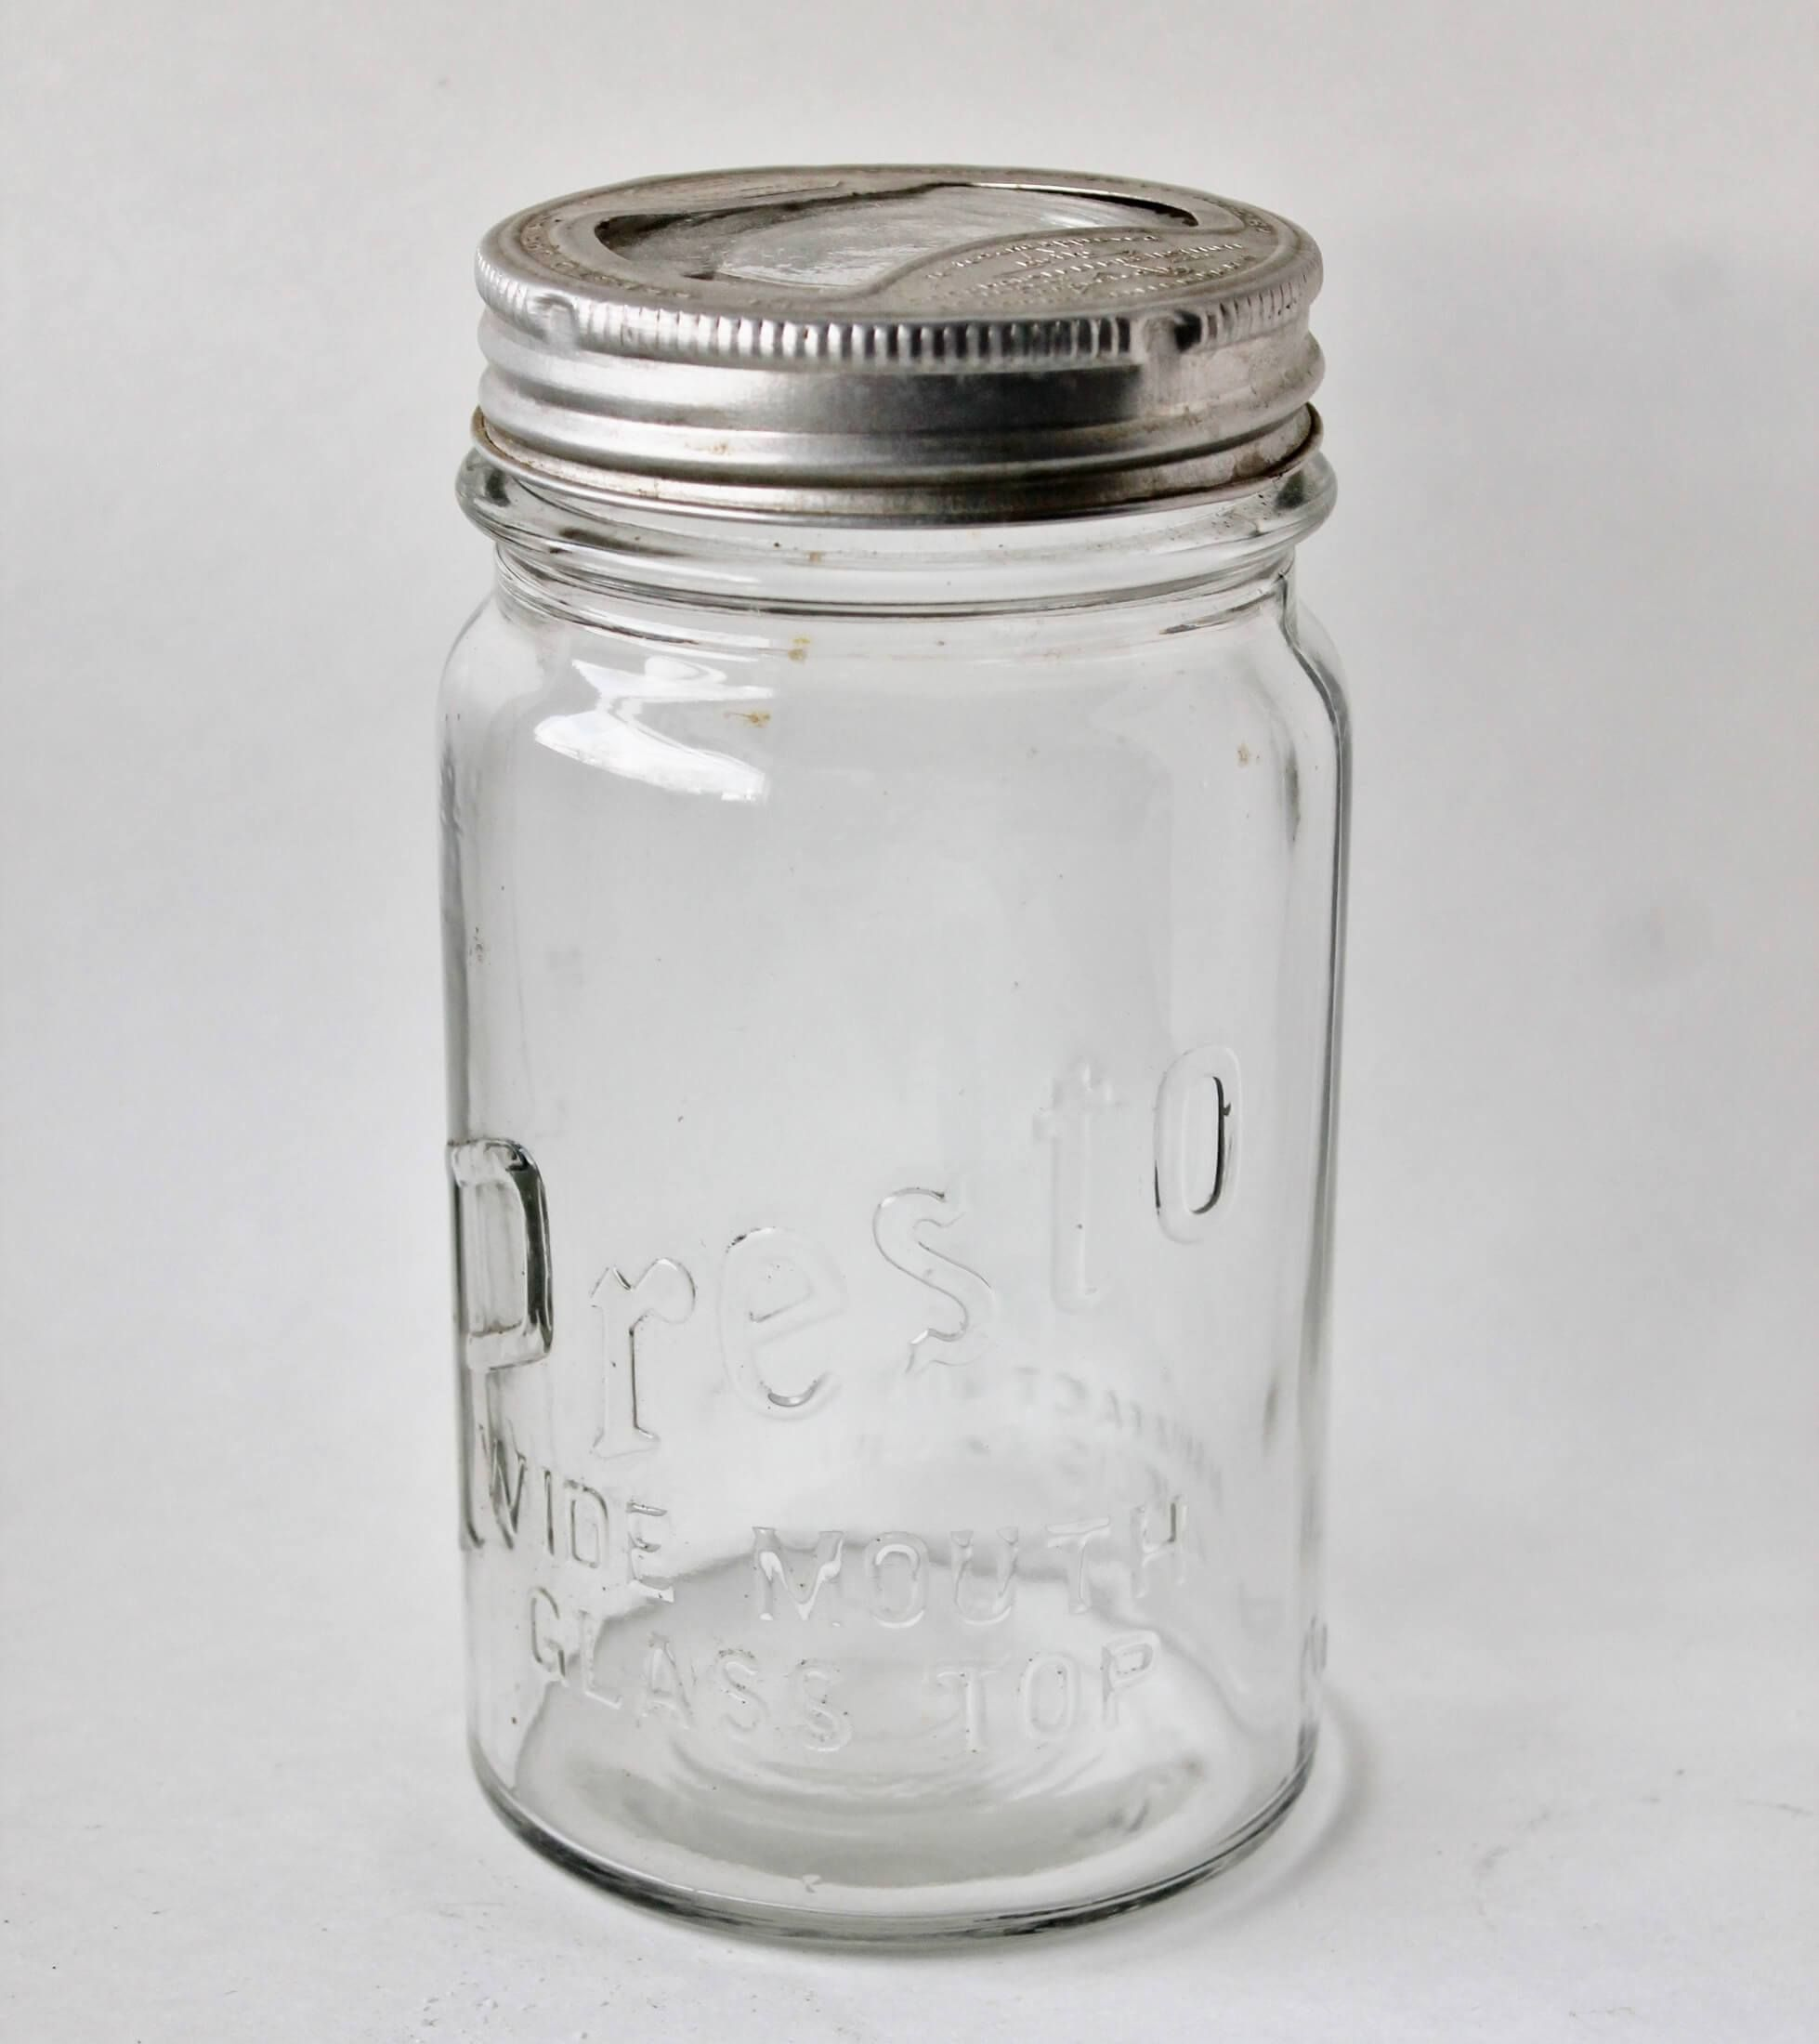 Antique Vintage Canning Jar Price Guide With Images Canning